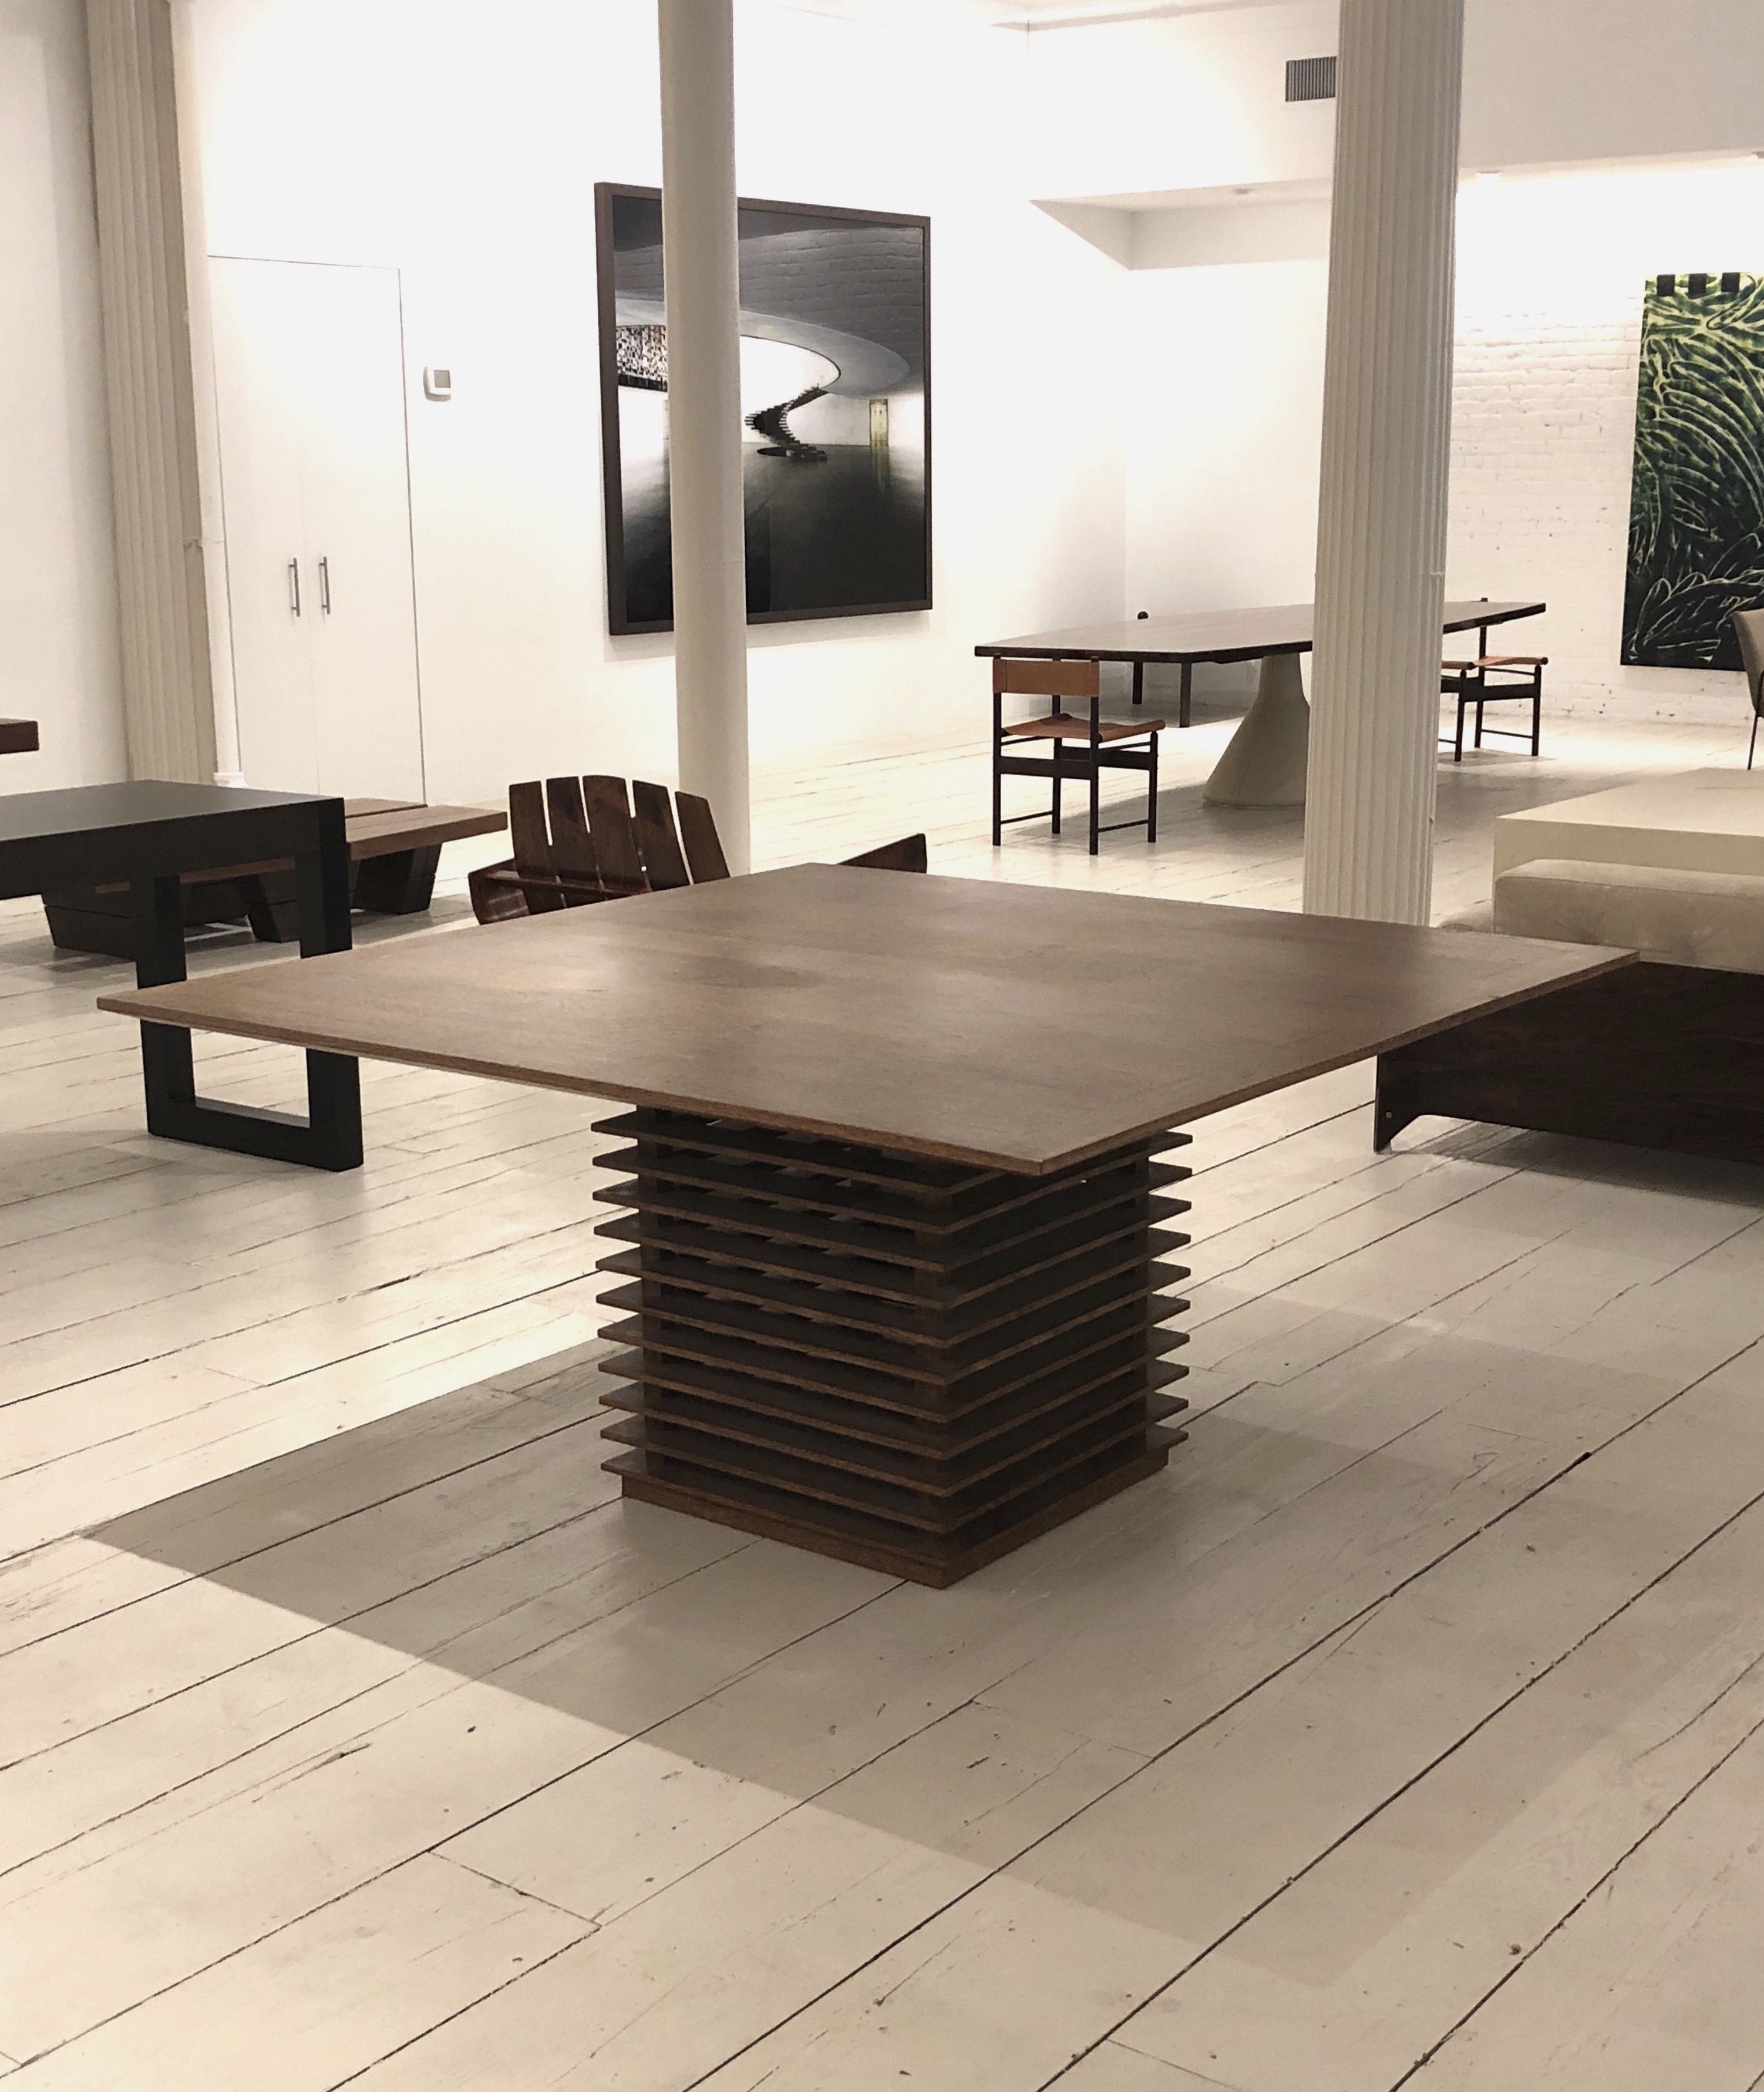 fresta dining table by claudia moreira salles available at espasso